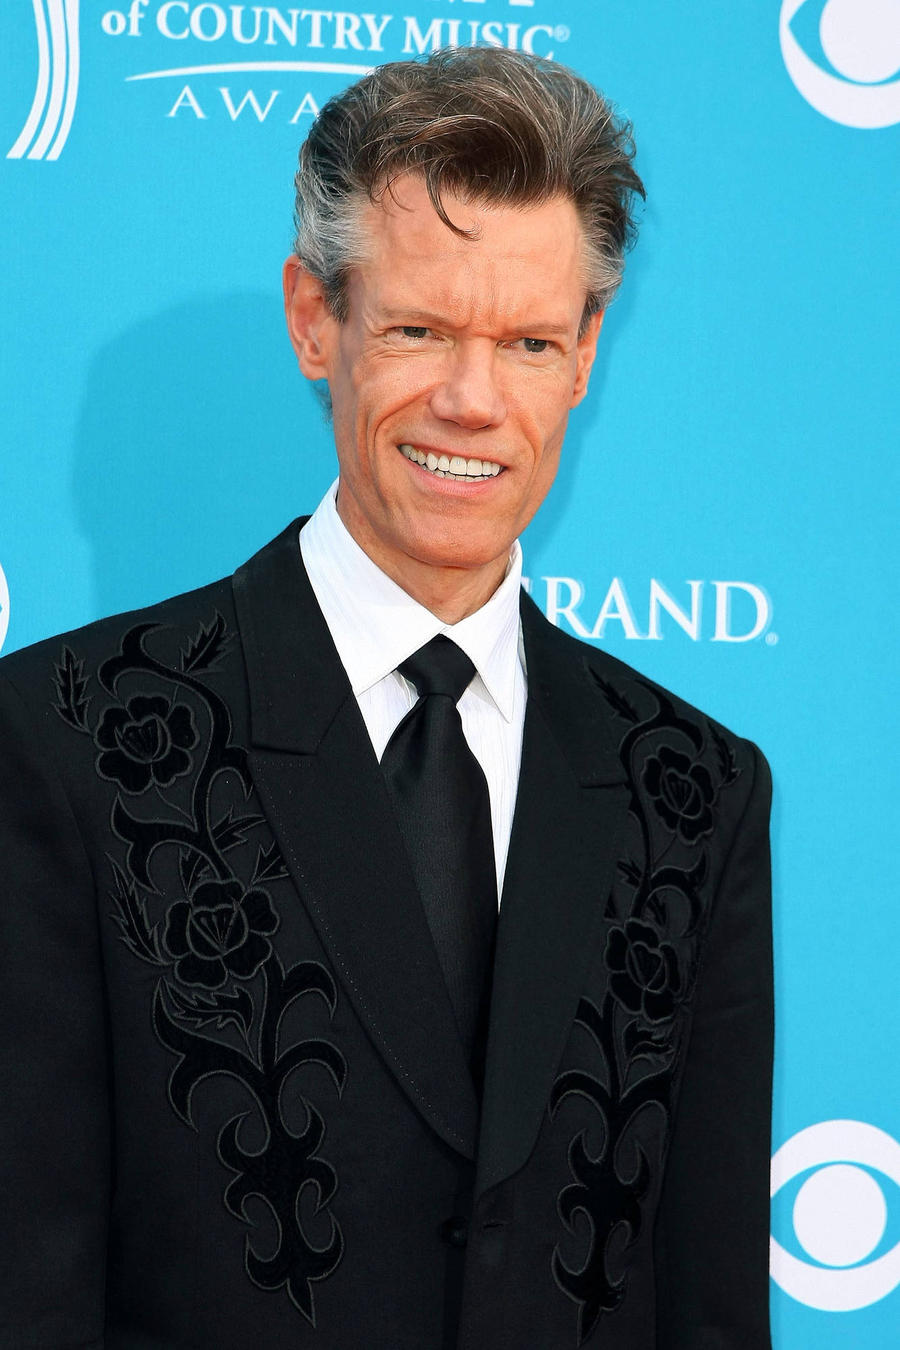 Randy Travis And Charlie Daniels Inducted Into Country Music Hall Of Fame